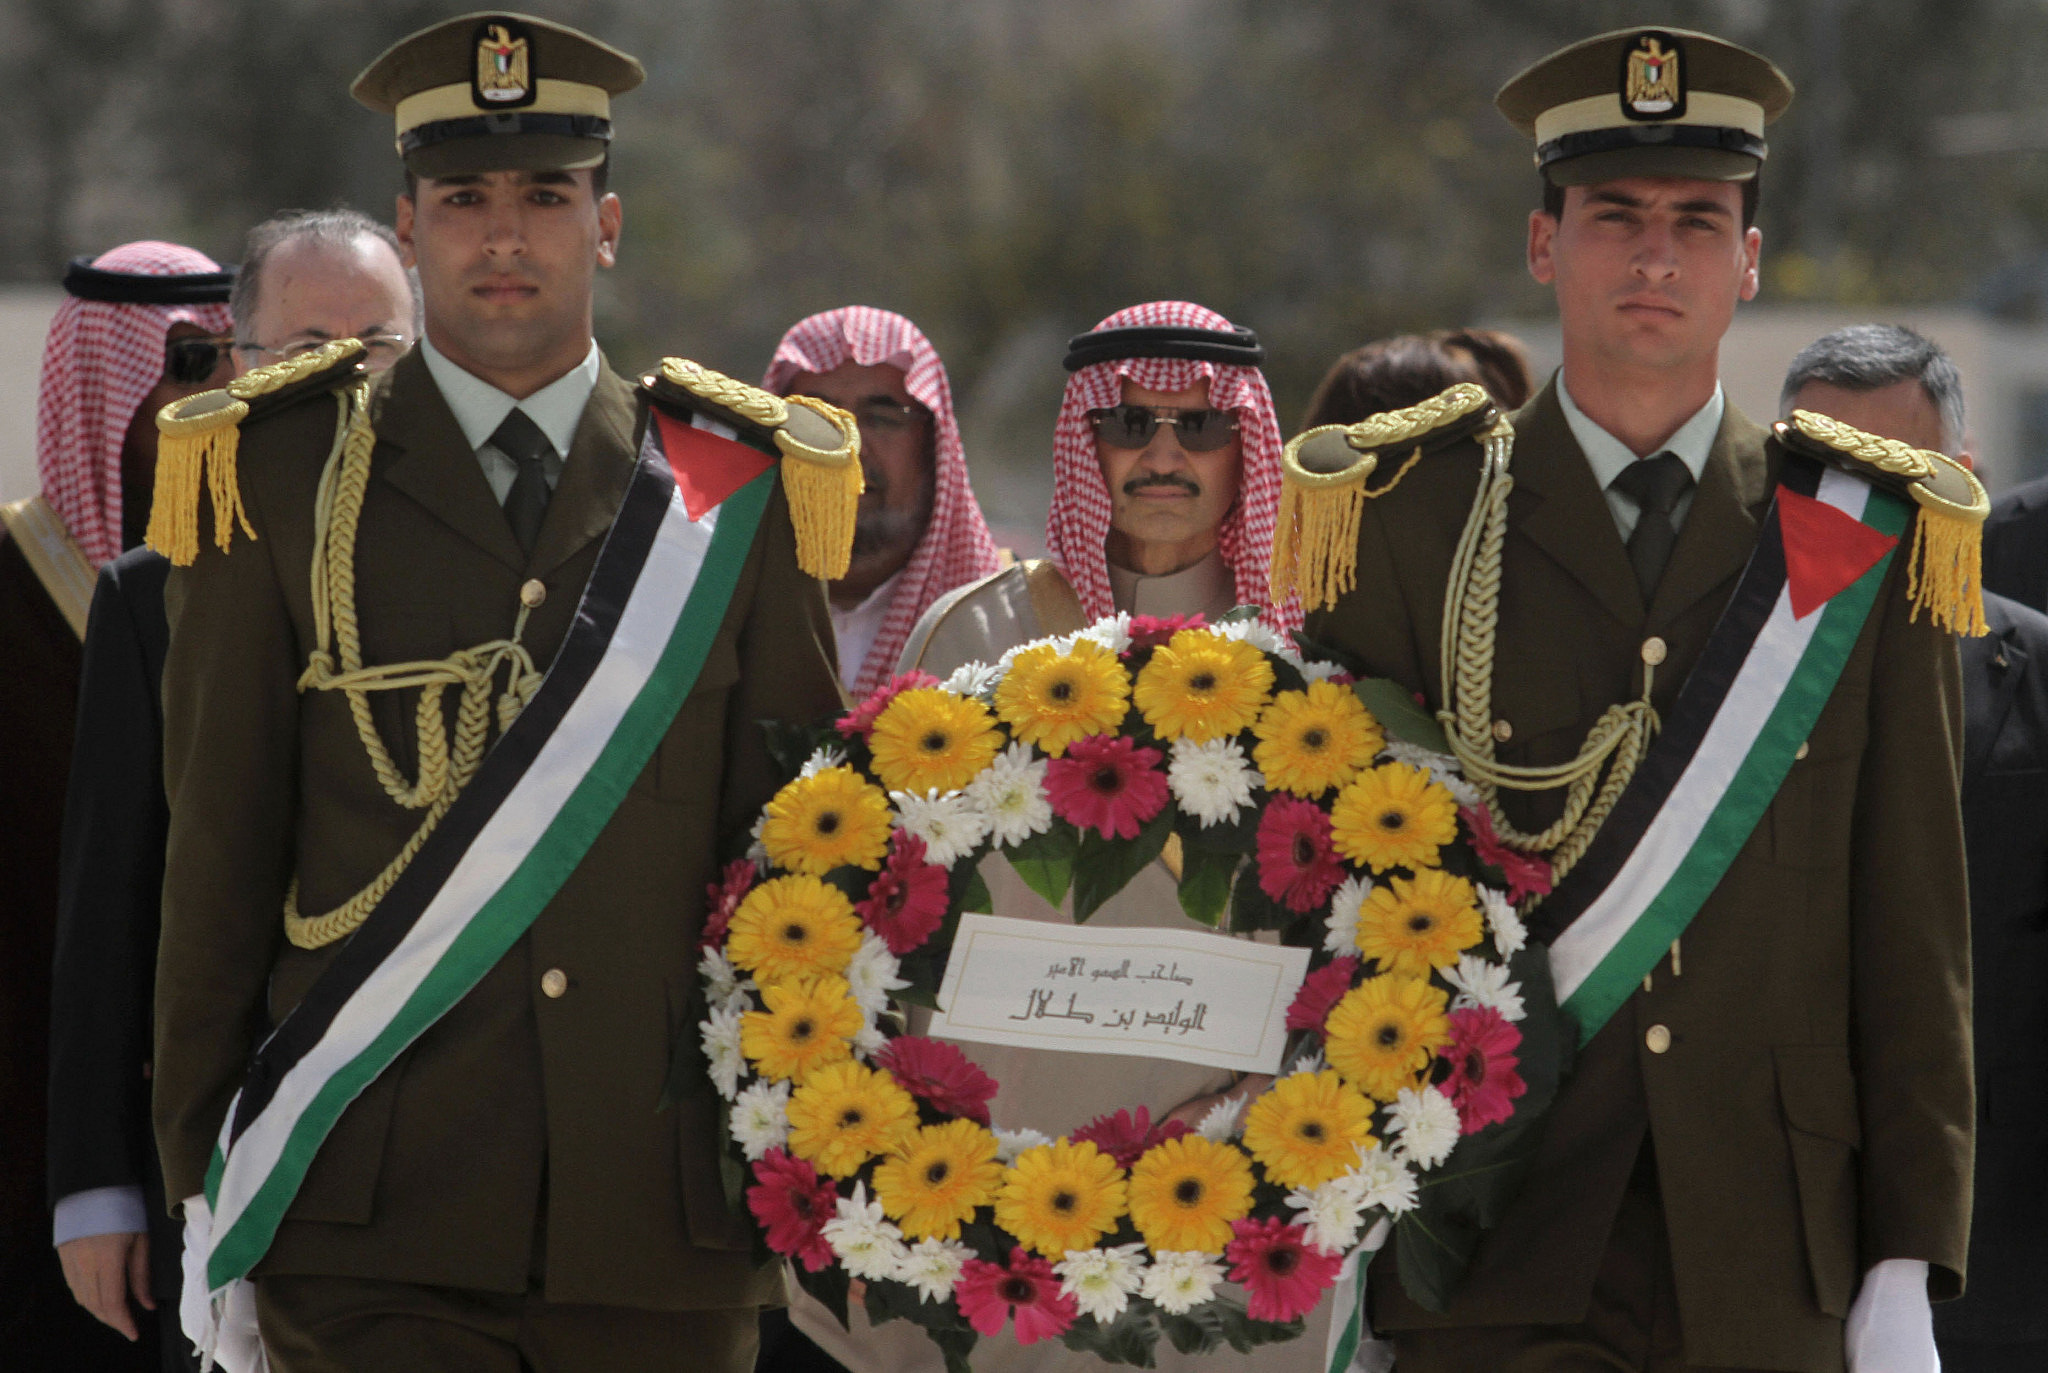 Saudi prince Al-Walid bin Talal seen upon his arrival at the Muqata'a Compound during an official visit to the West Bank city of Ramallah on March 4, 2014. (Issam Rimawi/Flash90)